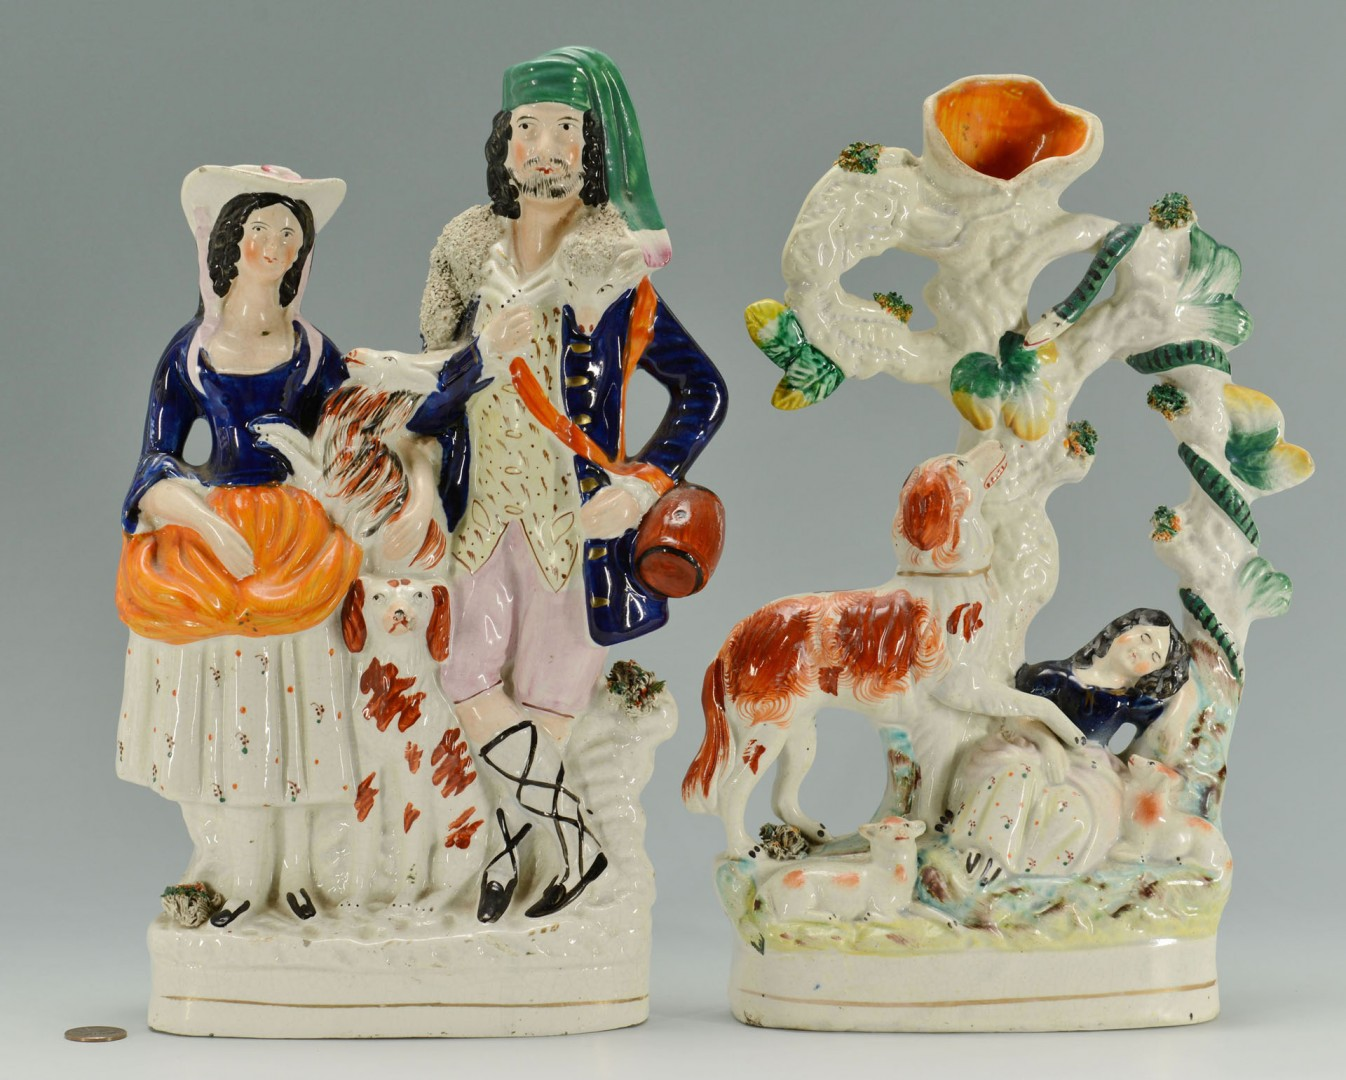 Lot 277: 2 Staffordshire Figural Groups, people and animals